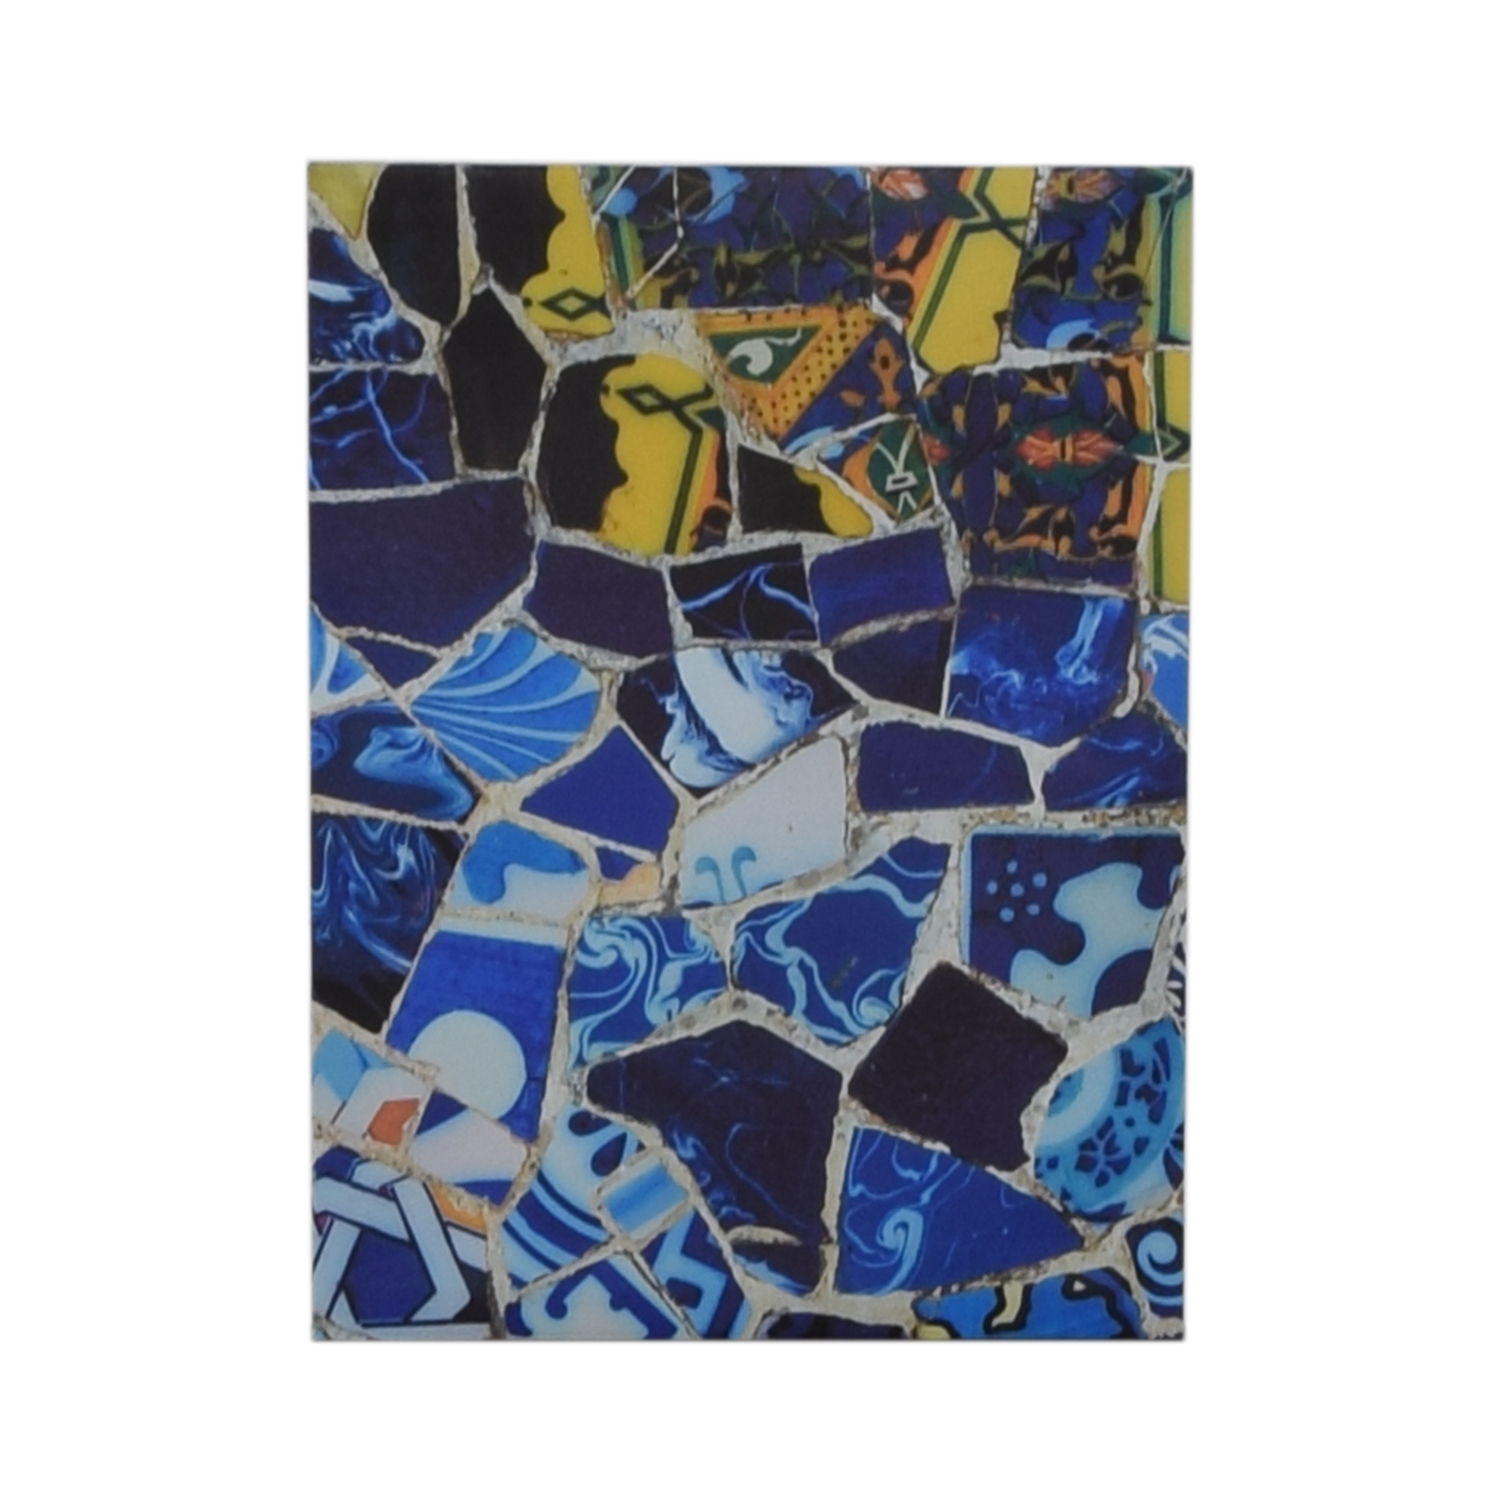 Canvas Print of Yellow and Blue Crushed Tiles on sale